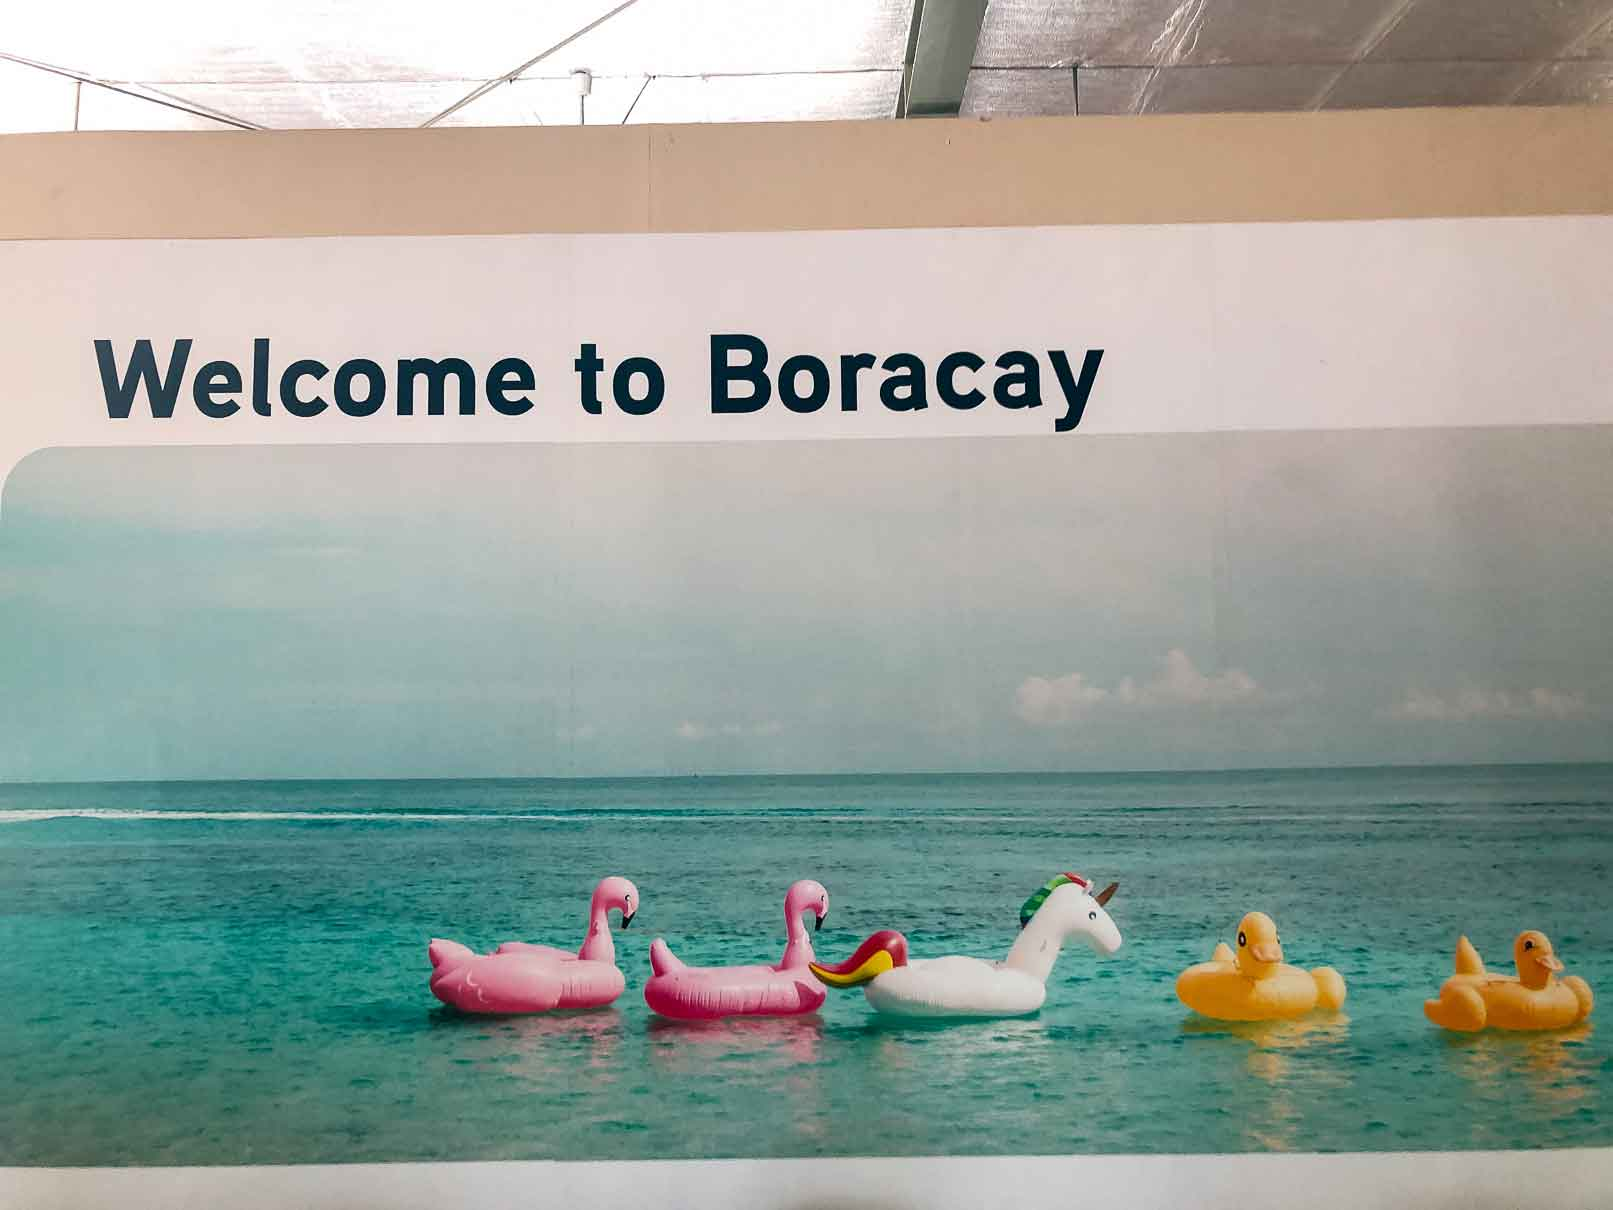 Welcome To Boracay side at Caticlan Airport MPH